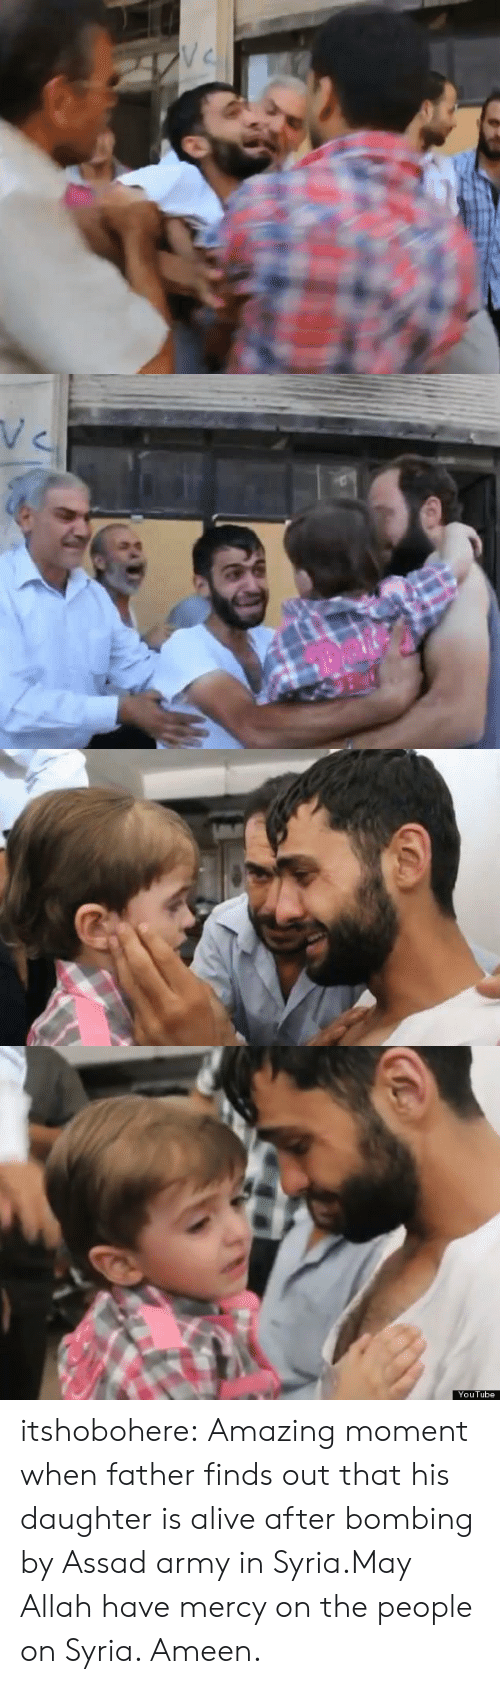 bombing: V C   YouTube itshobohere:  Amazing moment when father finds out that his daughter is alive after bombing by Assad army in Syria.May Allah have mercy on the people on Syria. Ameen.